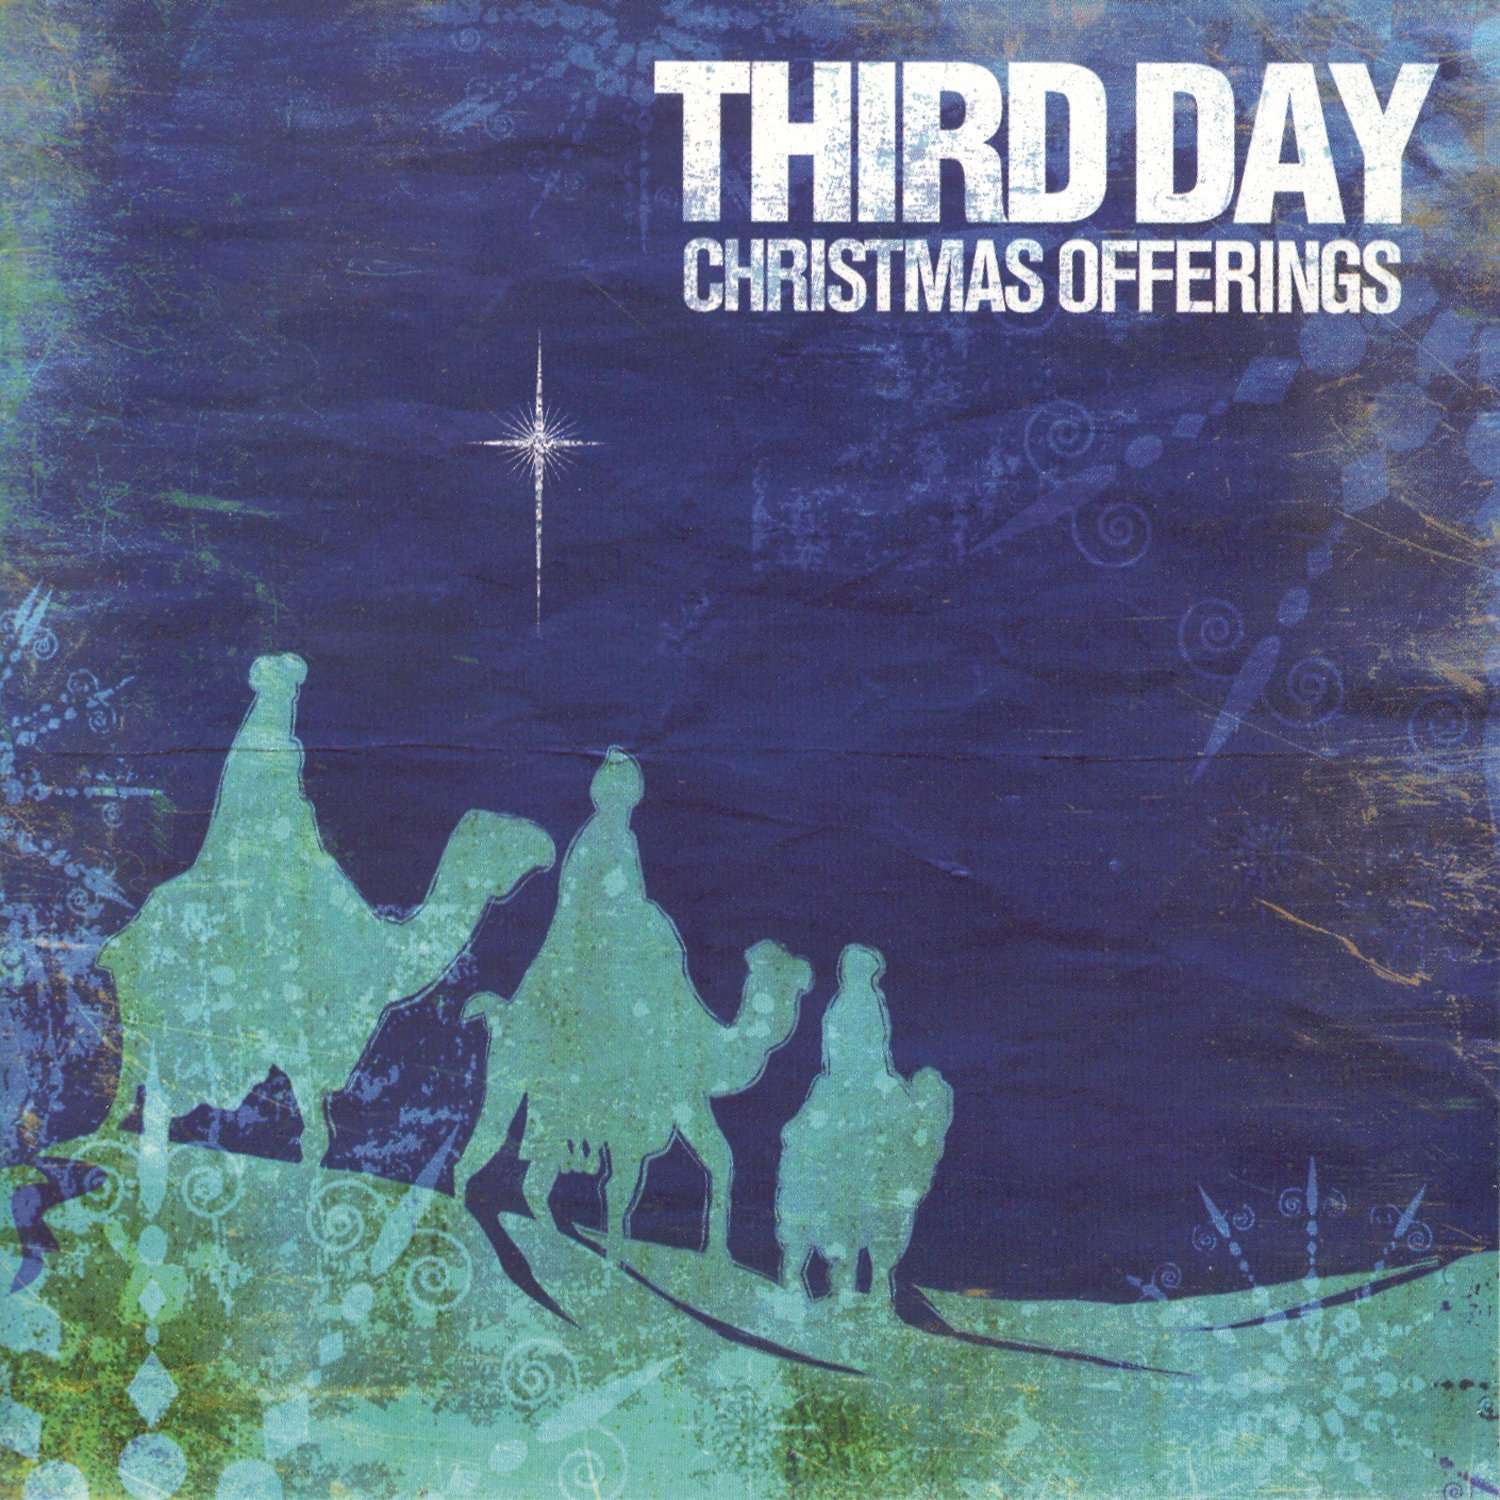 Third Day - Christmas Offerings - Amazon.com Music